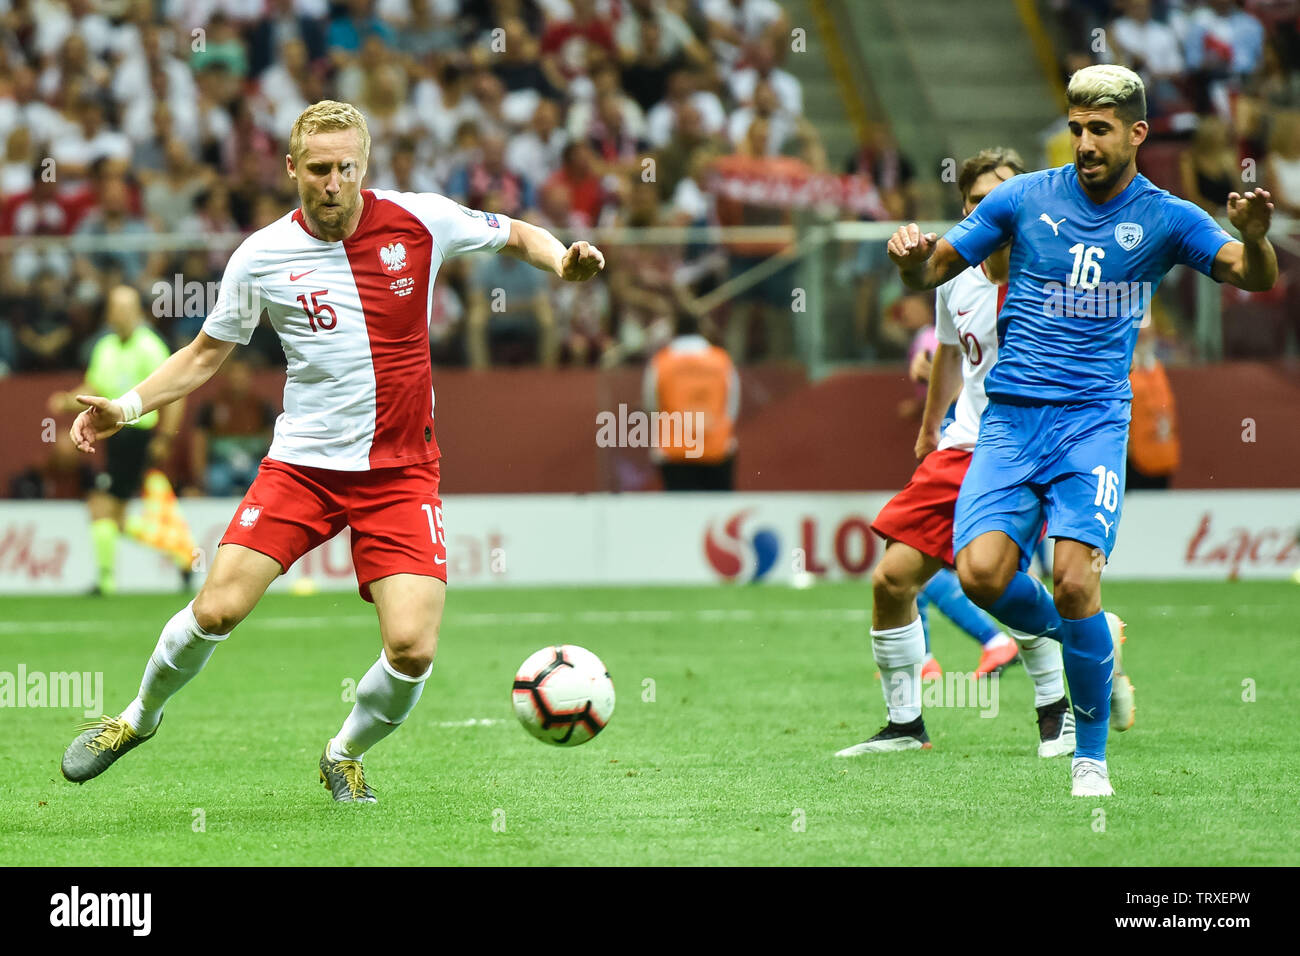 WARSAW, POLAND - JUNE 10, 2019: Qualifications Euro 2020  match Poland - Israel 4:0. In action Kamil Glik (L) and Yonatan Cohen (R). - Stock Image